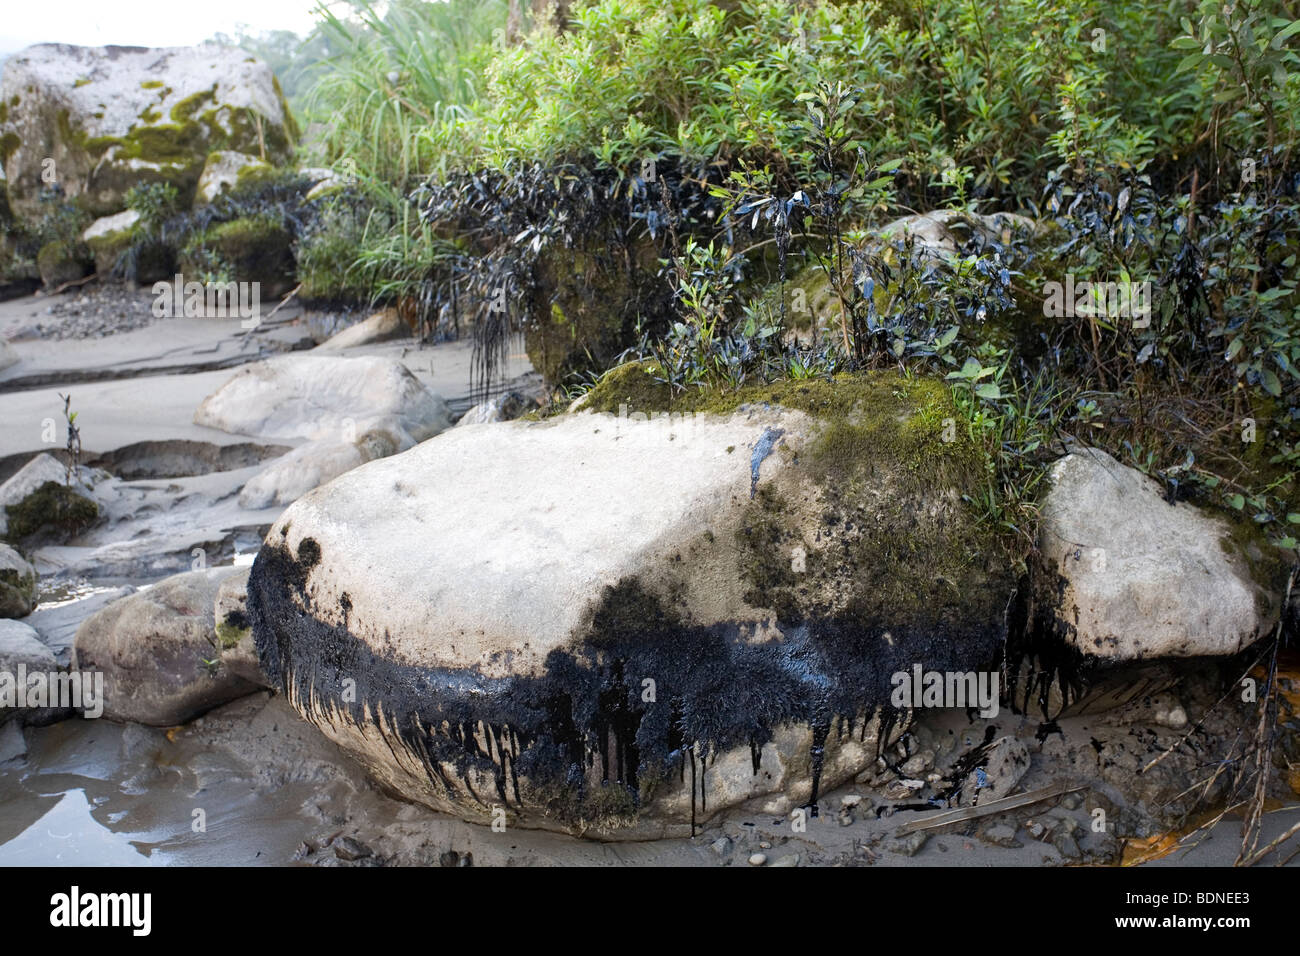 Crude oil on a riverbank following an oil spill in an Amazonian river - Stock Image